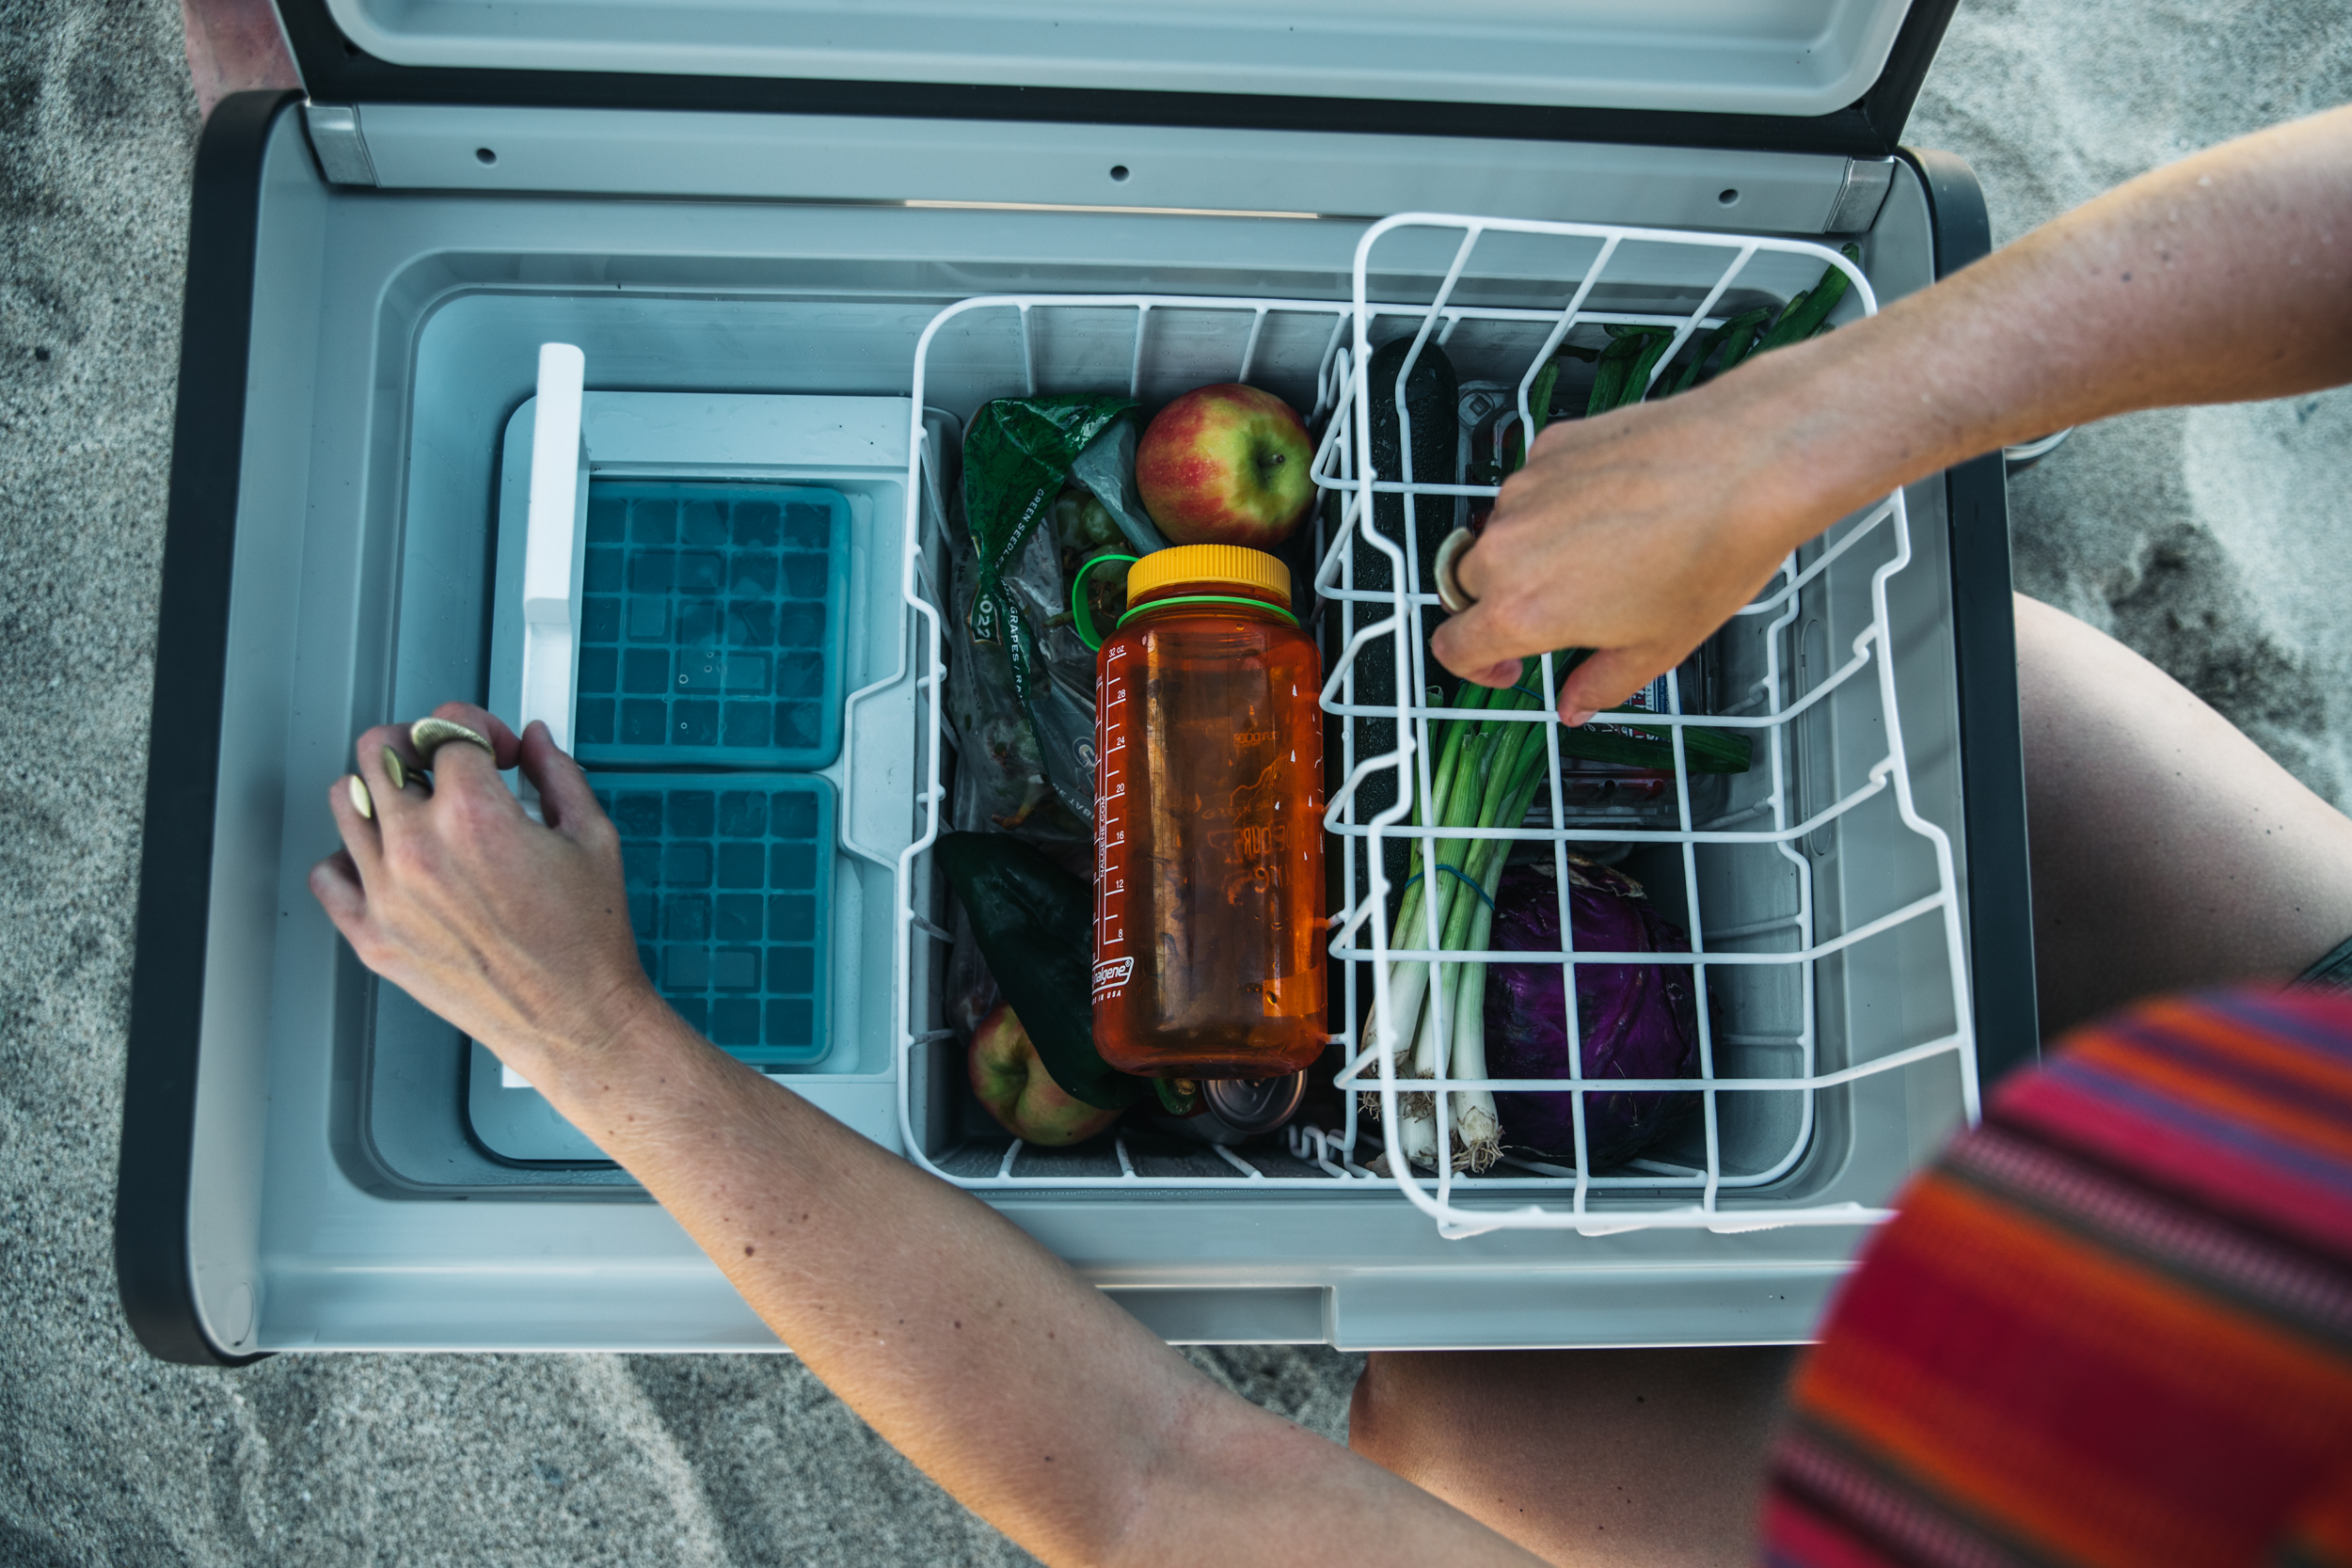 Best Portable Refrigerator Yet? We Tested Dometic's New CFX3   GearJunkie